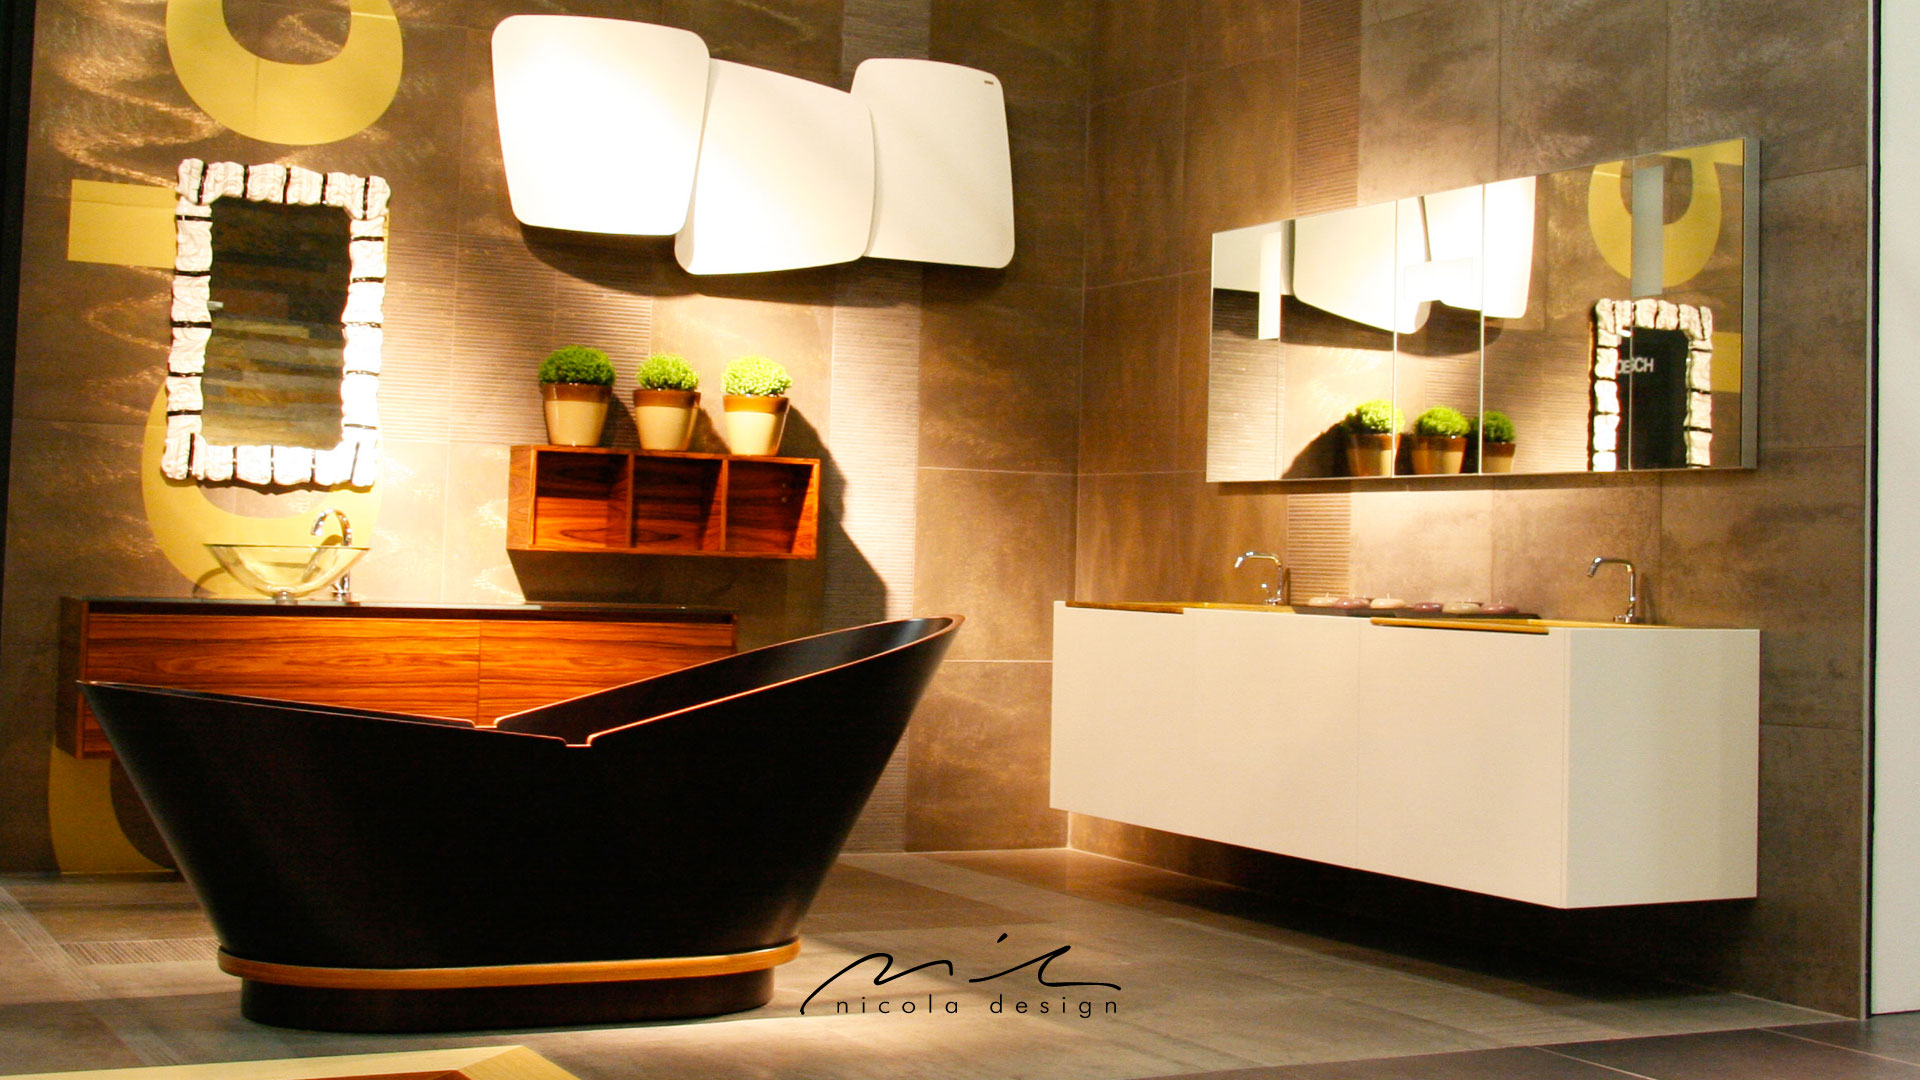 GOLD-nicoladesign-bathroom-nice